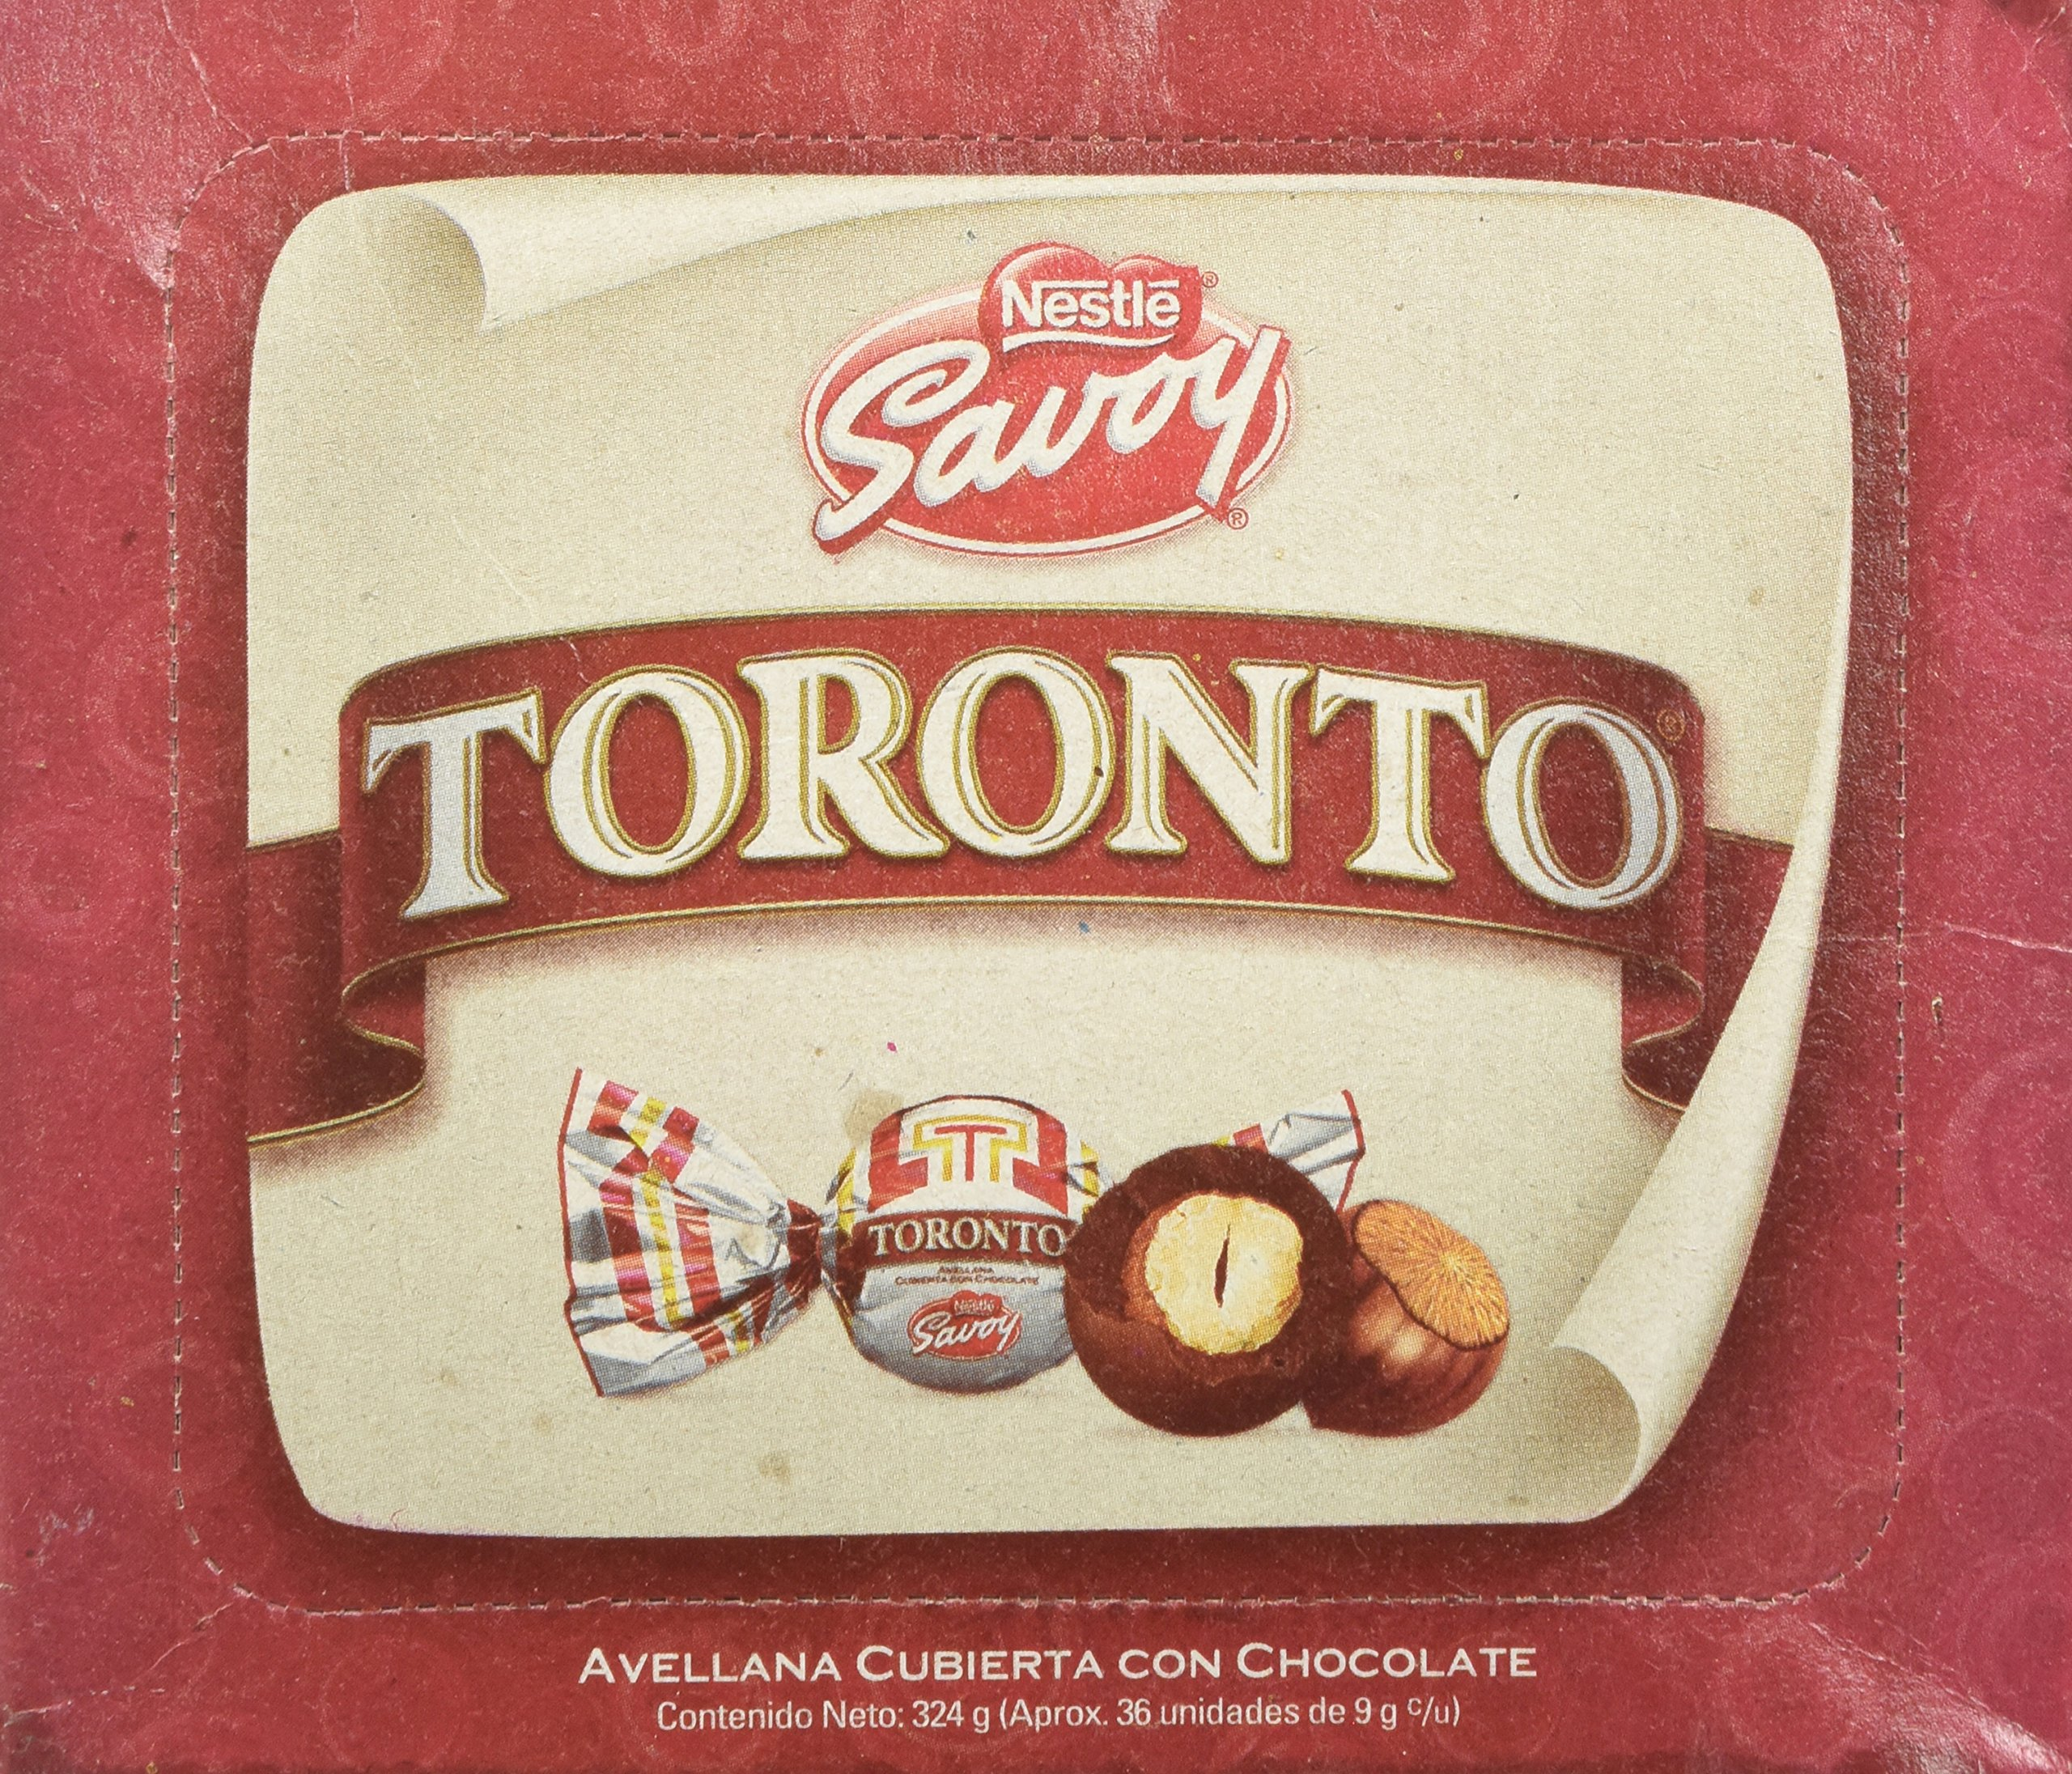 Nestle Savoy Toronto Chocolate Covered Hazelnut Savoy 36 Unit NET Wt 324g